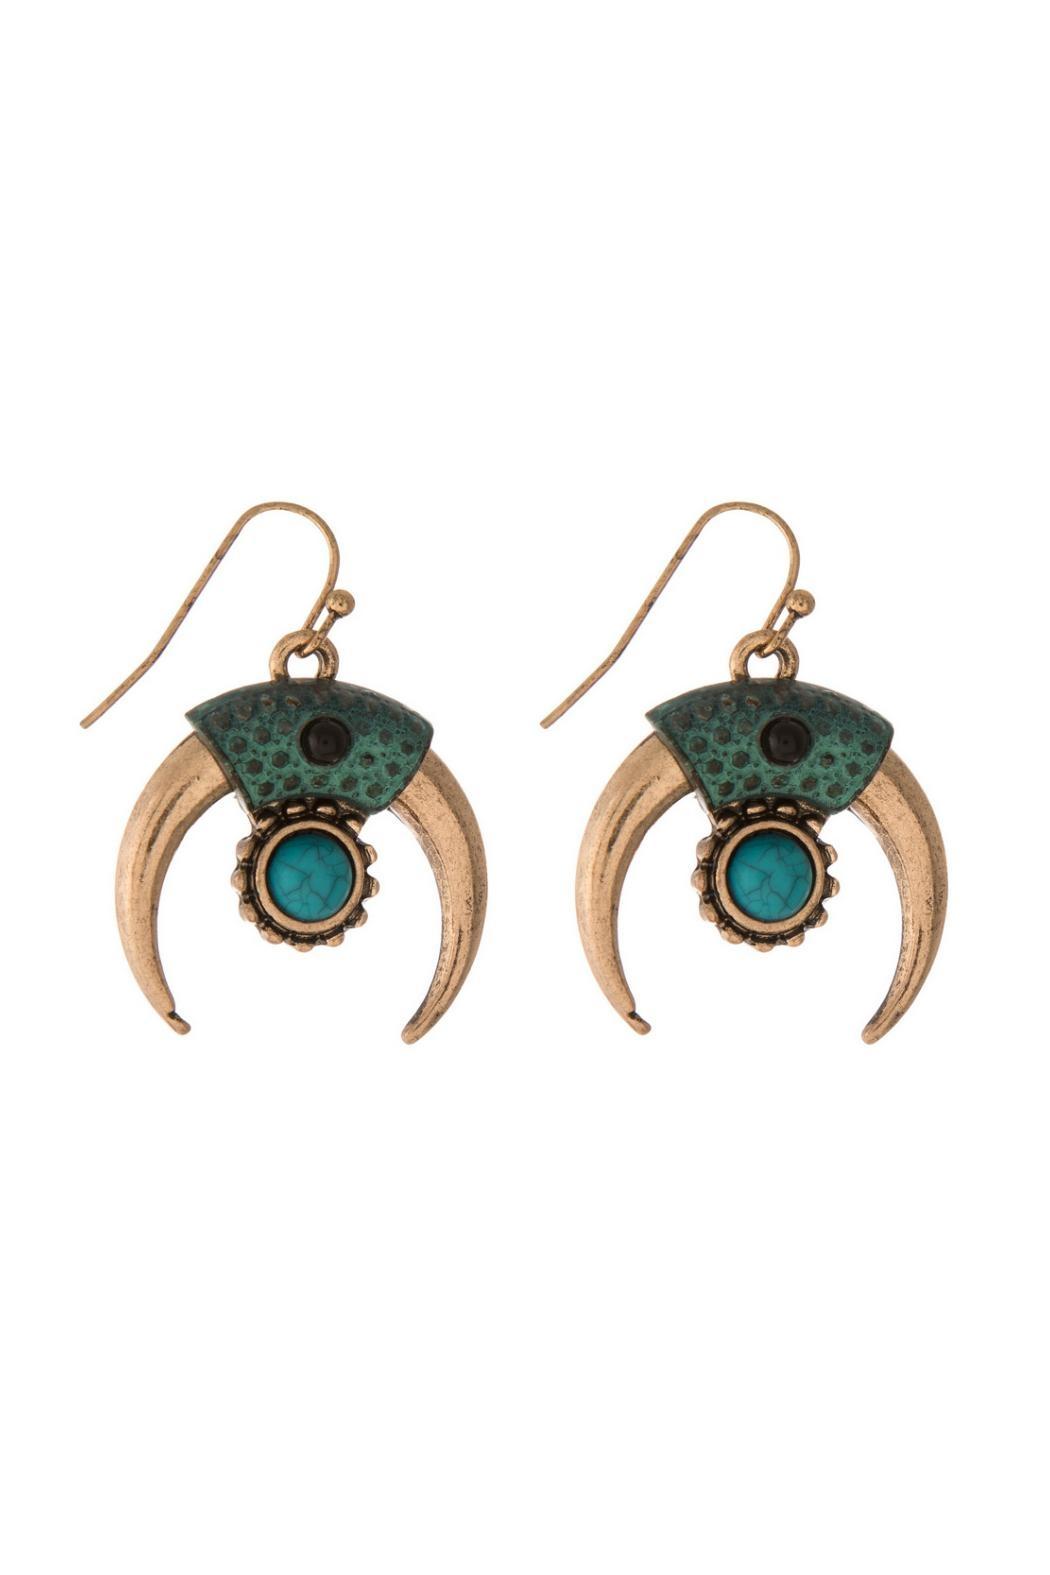 Mimi's Gift Gallery Patina Turquoise Earrings - Main Image